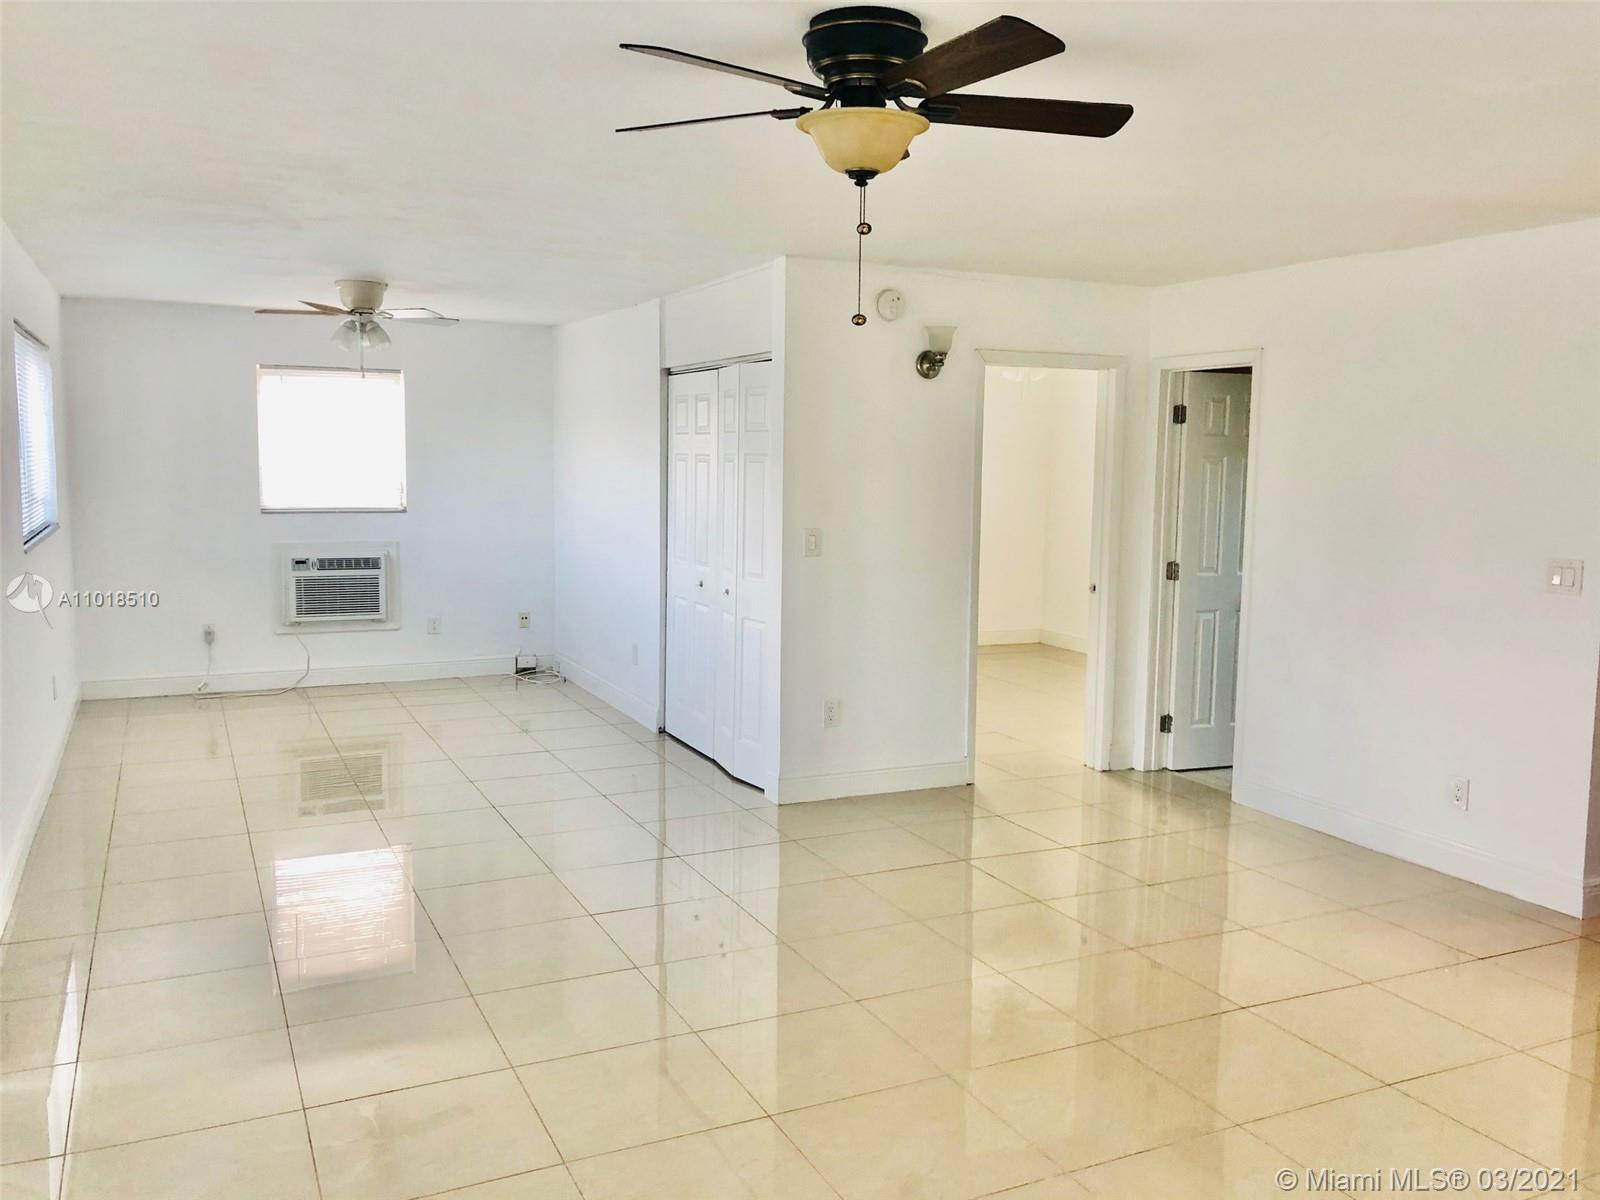 Beautifully updated unit including updated kitchen and bath. Move in ready, with large closets with ample storage. Located in highly desirable Fort Lauderdale. East of US 1 near all of the most desirable locations in Fort Lauderdale including hotels,ft Lauderdale intl airport,major hwys Just blocks from 17th Street Walking distance to the intracoastal and Rio Vista, and two short miles to beautiful Fort Lauderdale beach. Tropical landscaping throughout development and includes a heated pool, lake with fountain and a BBQ area. Only 4 units per 2-story bldg. Association says 55+